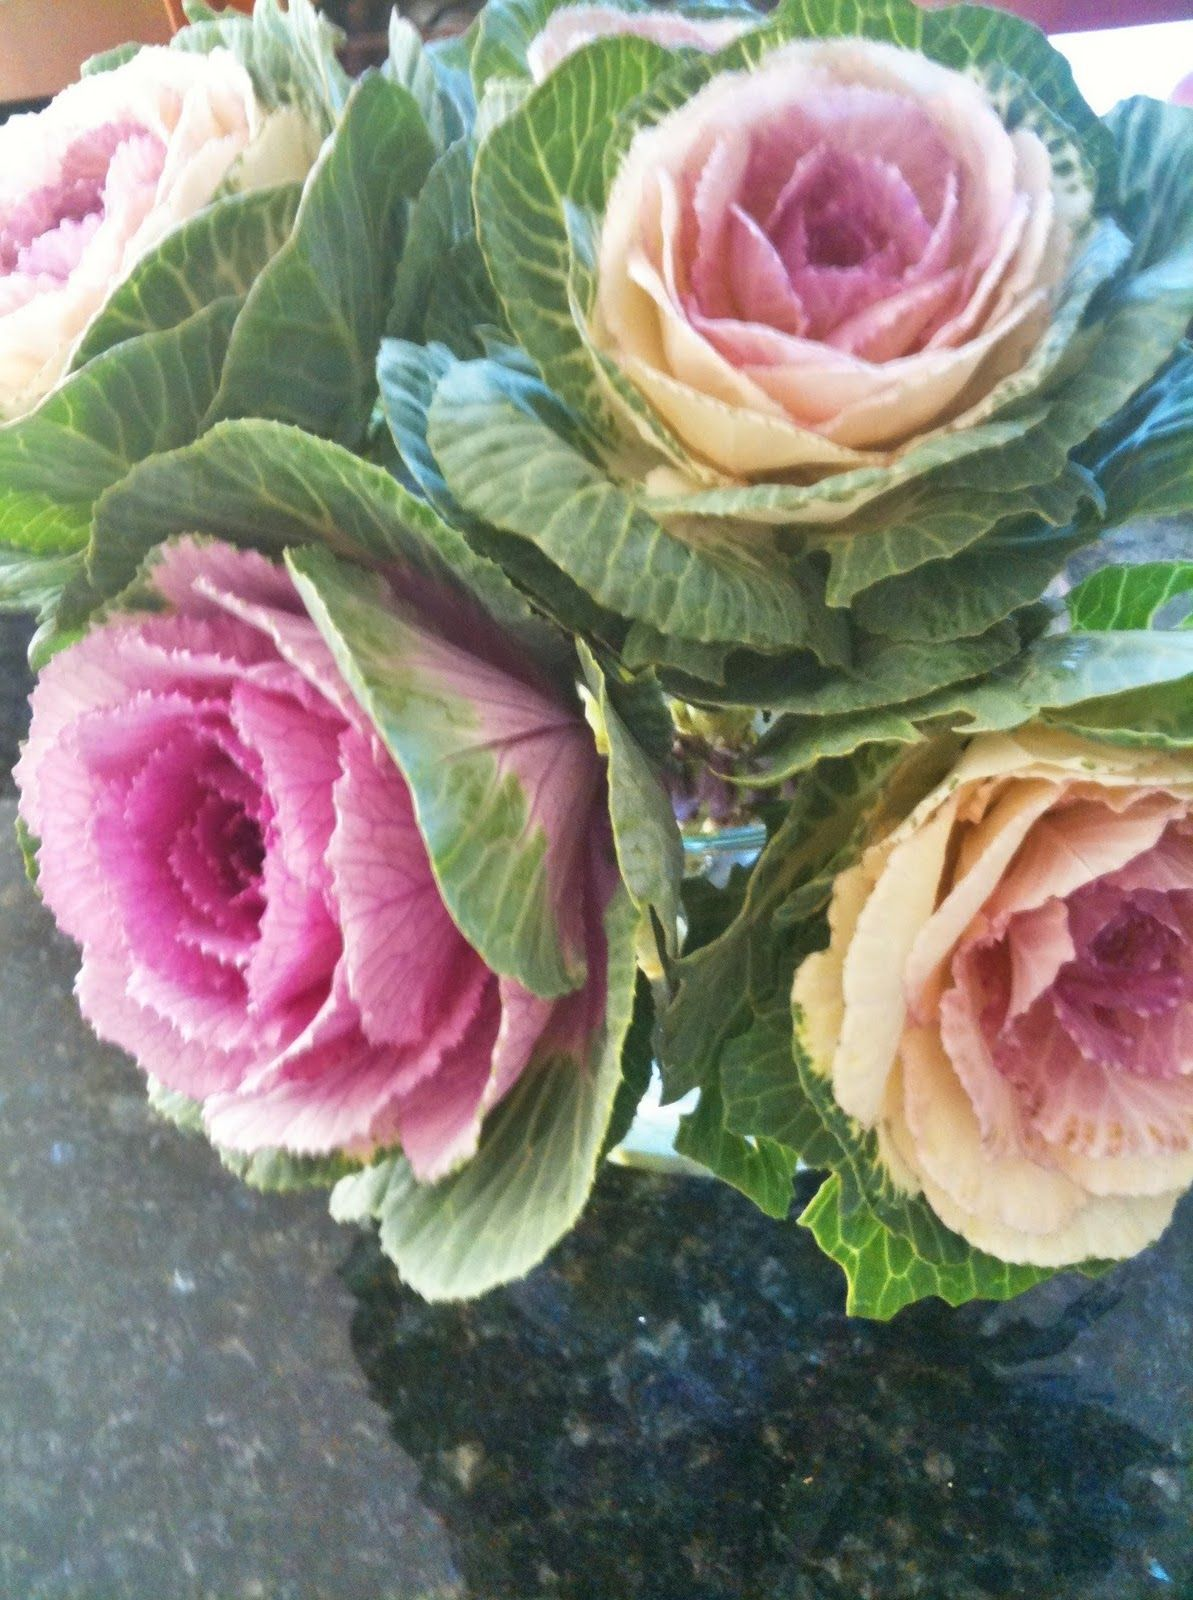 Cabbage Roses Flower Farmer Ornamental Cabbage Ornamental Plants